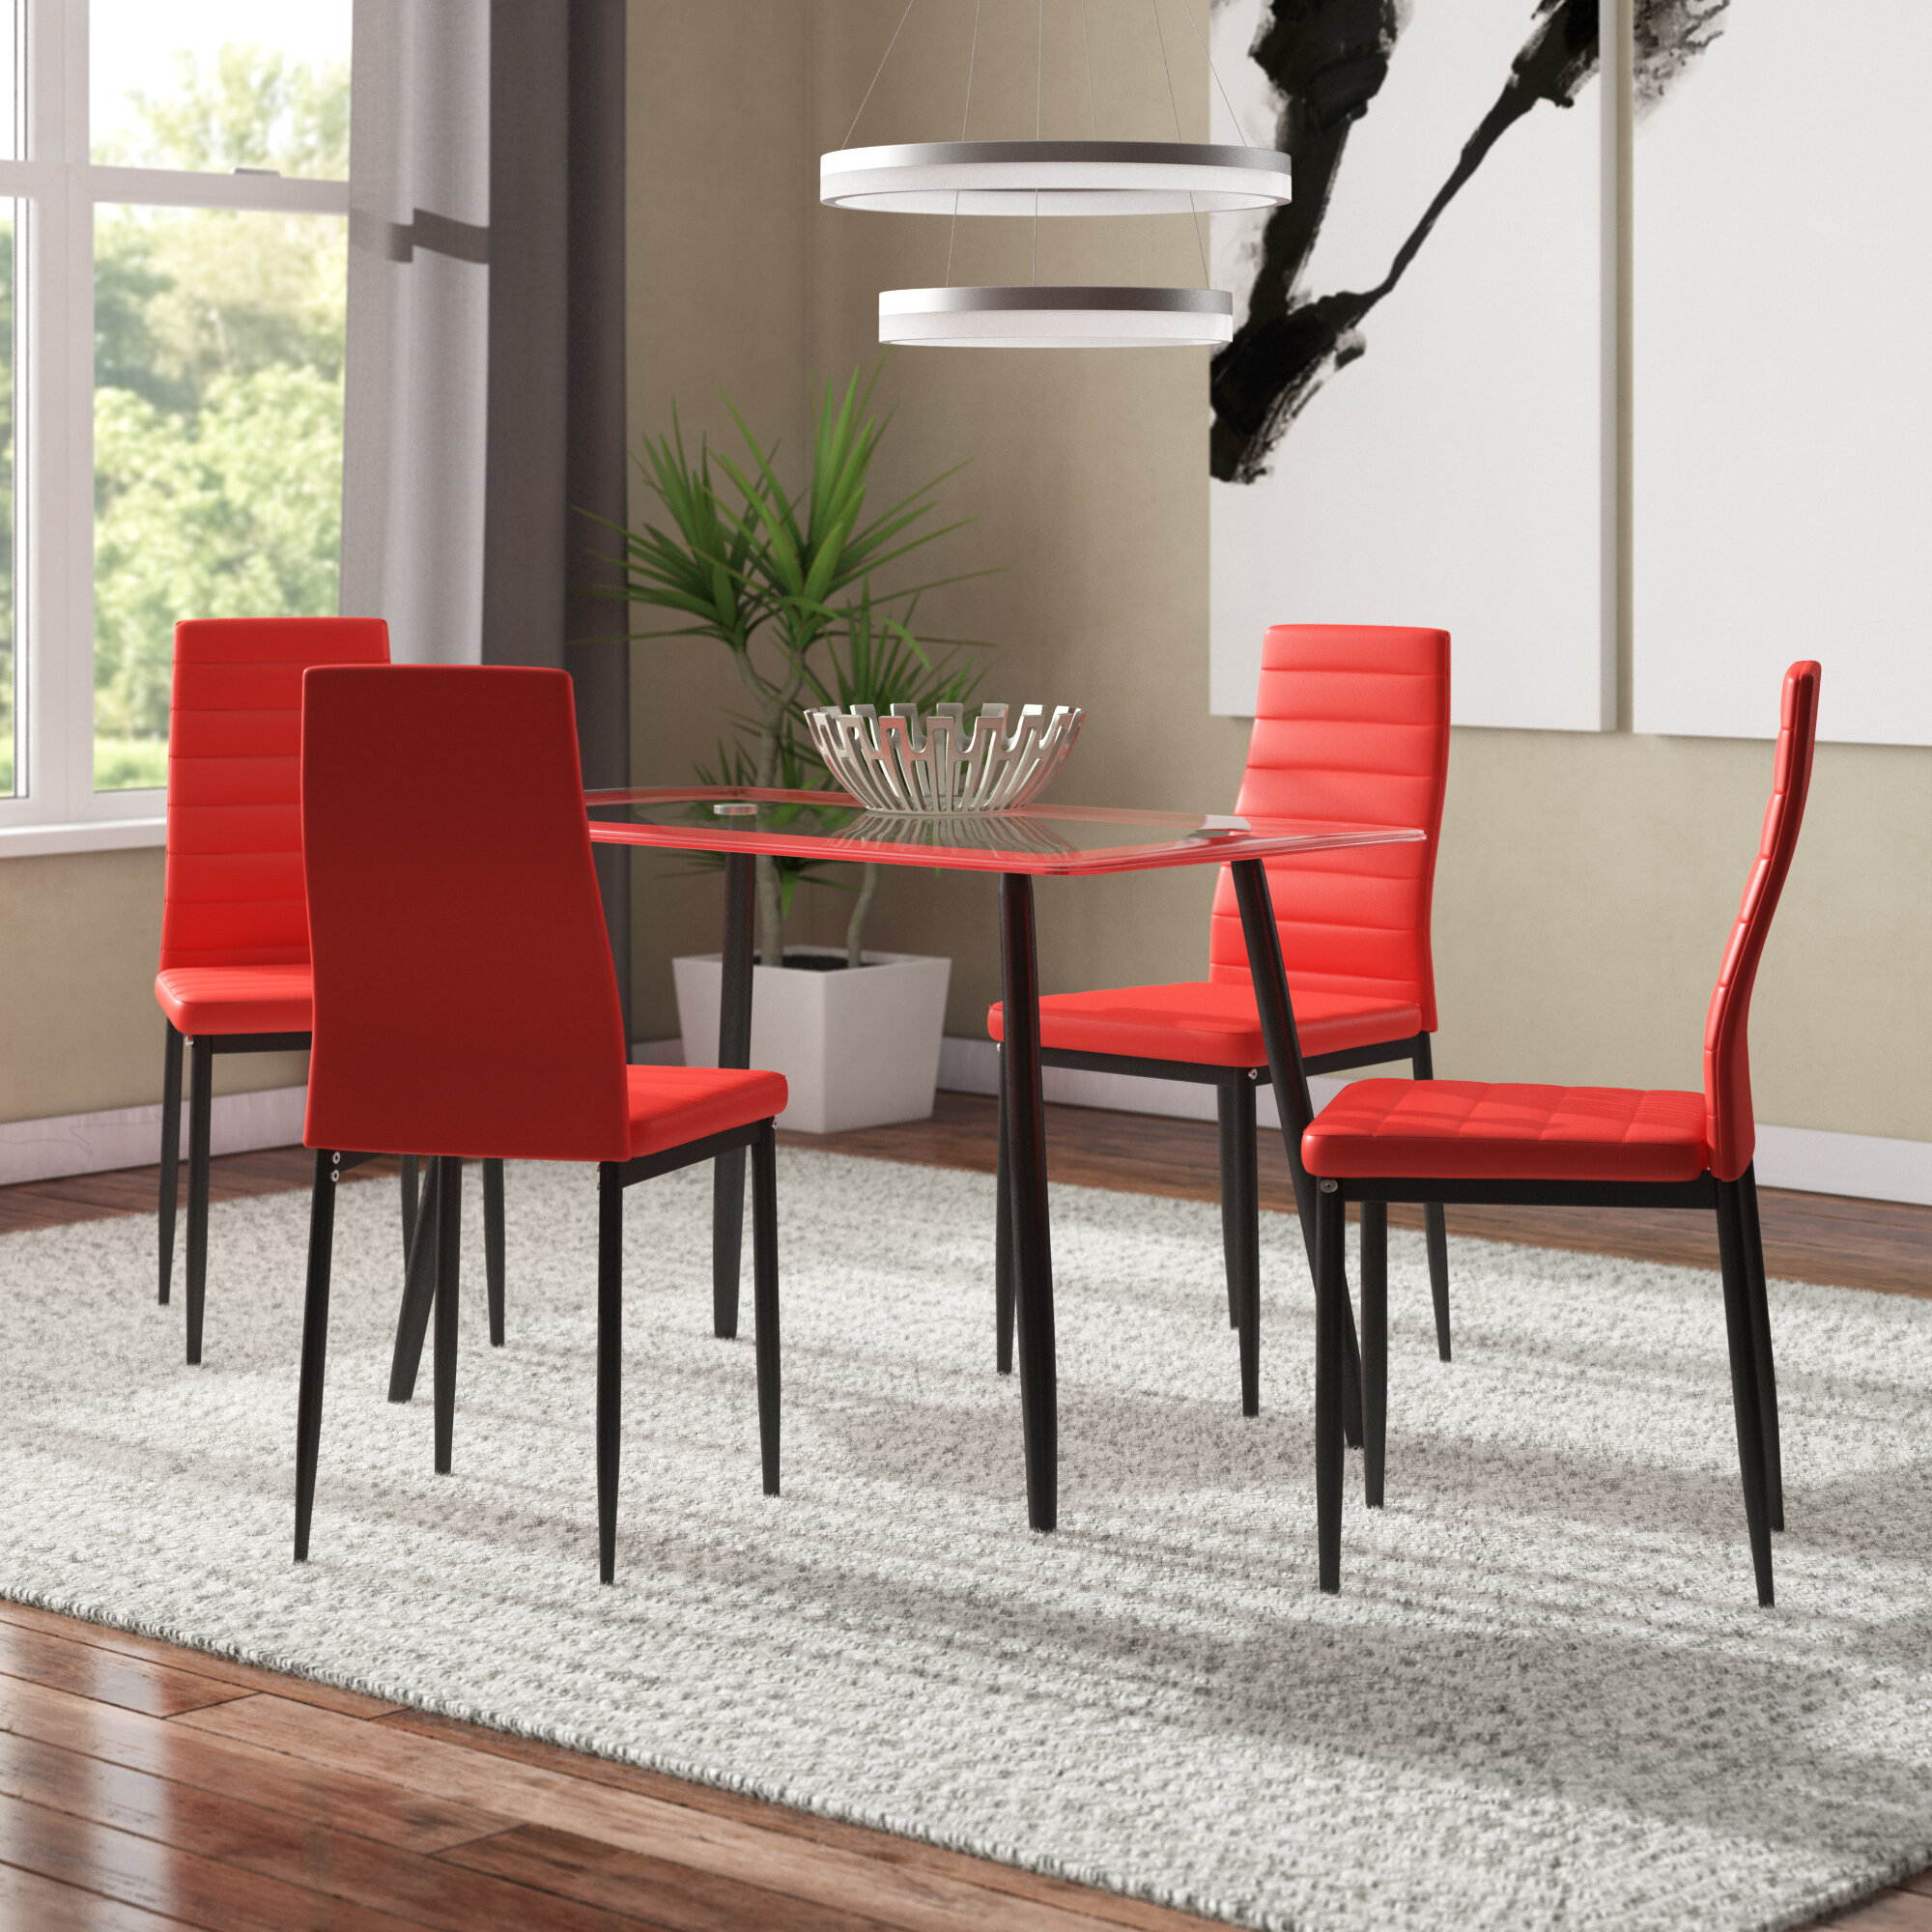 Orren Ellis Linette 5 Piece Dining Table Set & Reviews | Wayfair